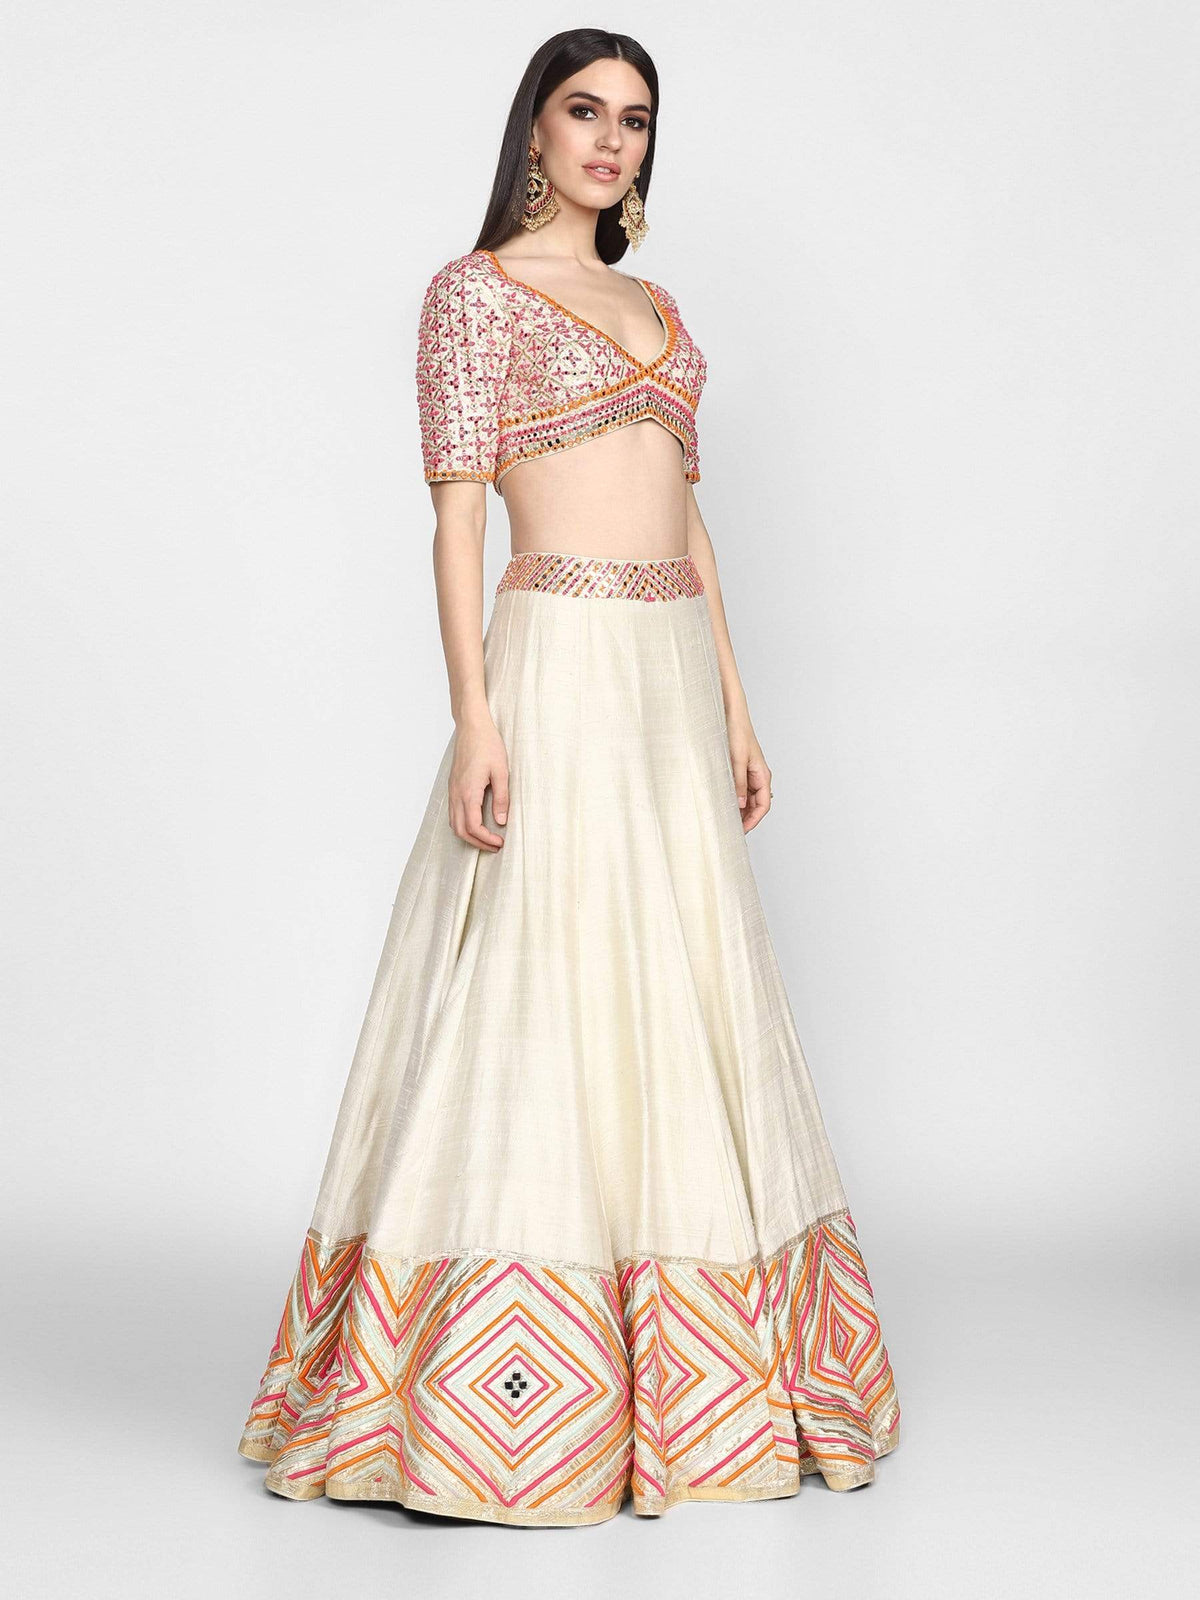 Abhinav Mishra Light Lehengas Multicolored hand emb lehenga